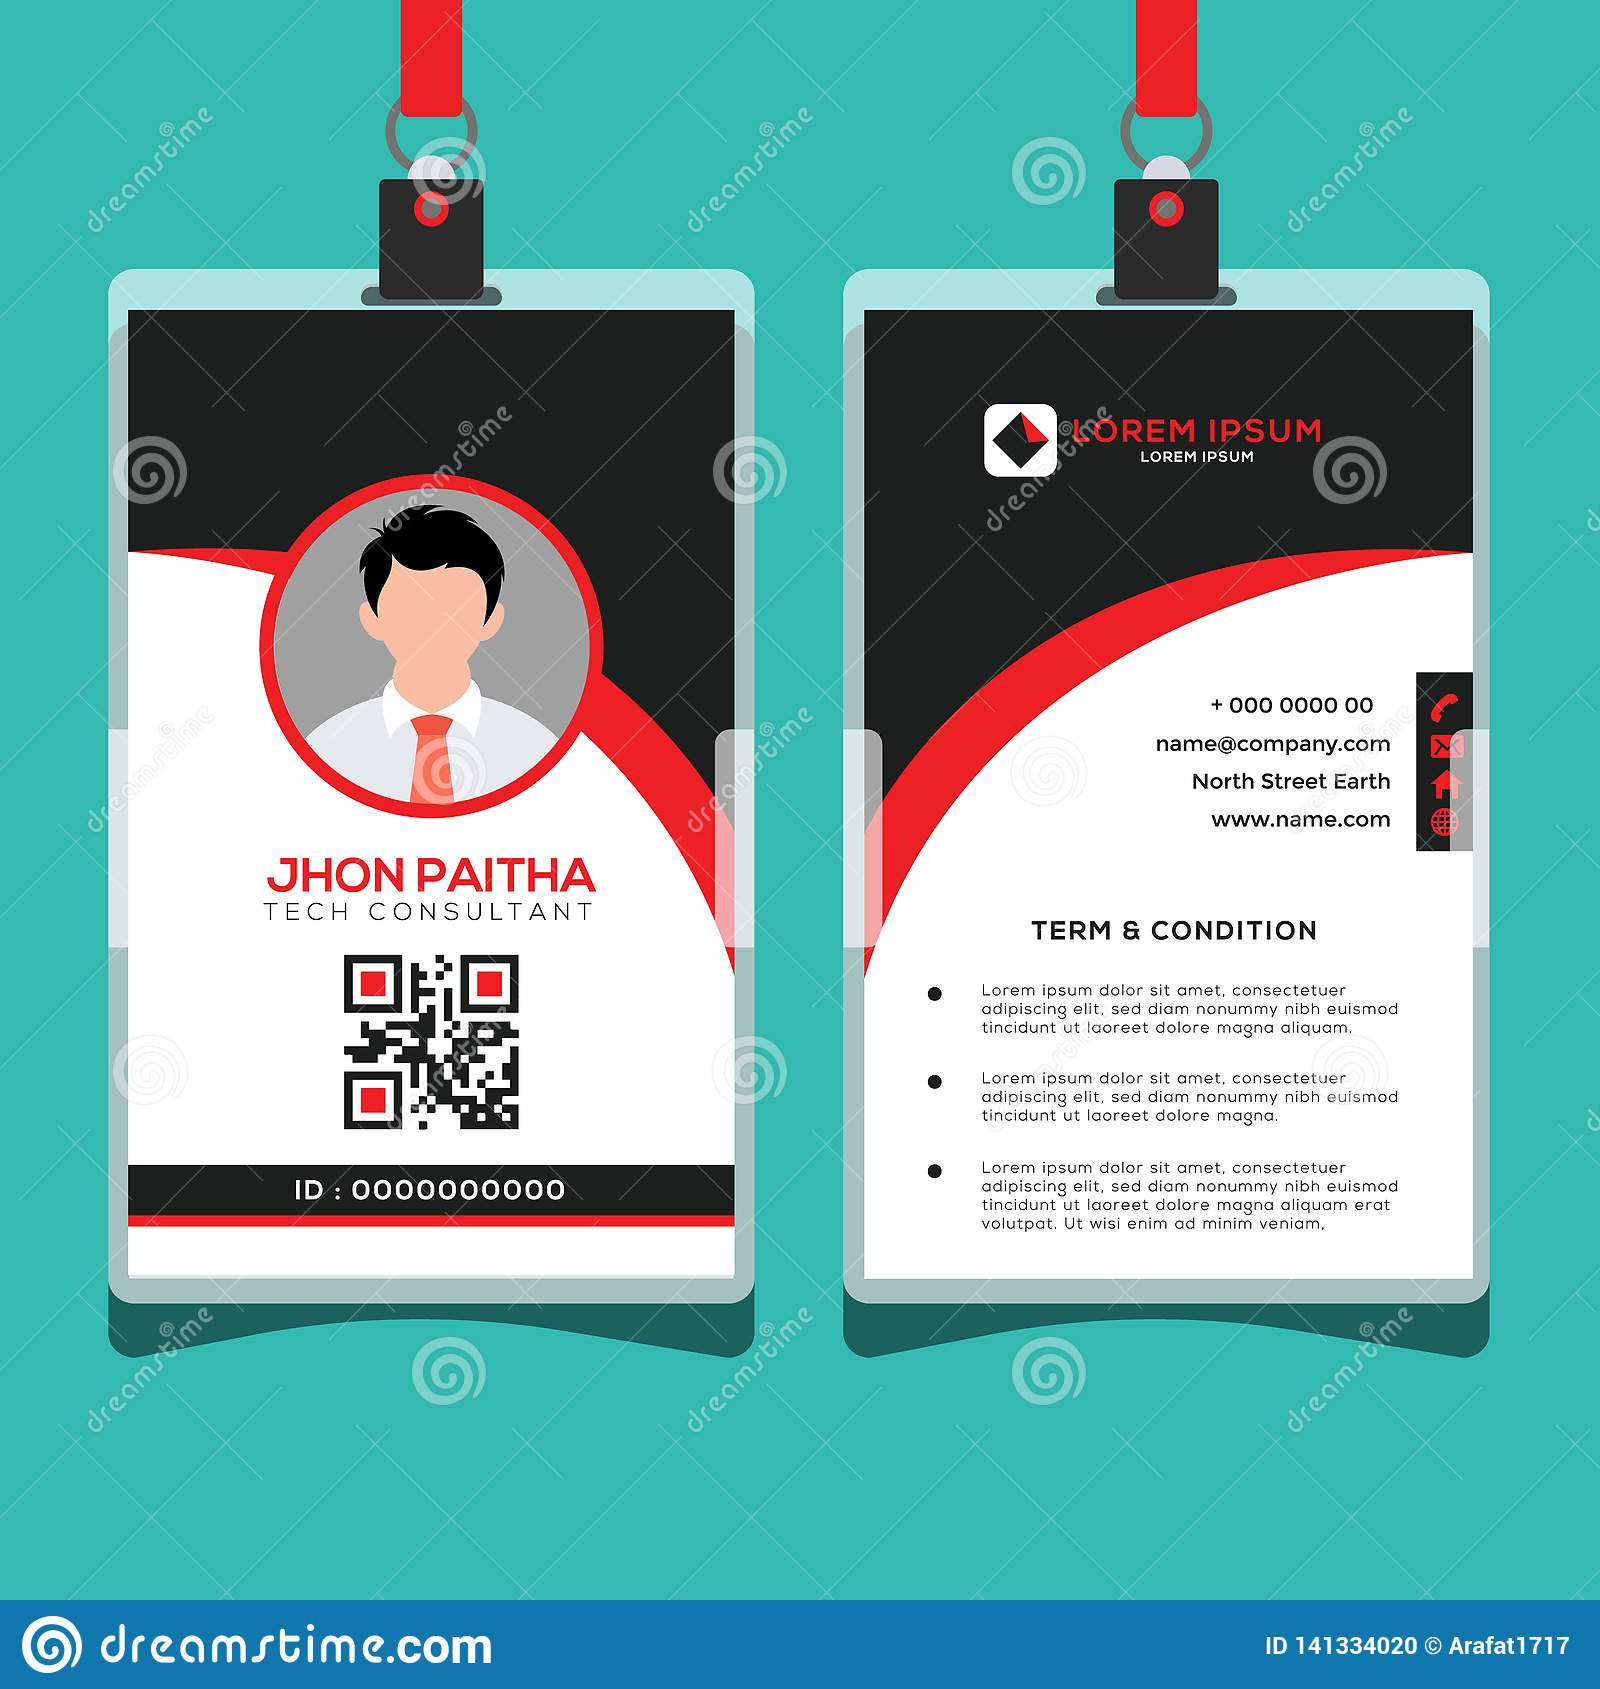 Corporate ID Card Design Template Stock Vector - Illustration of Intended For Company Id Card Design Template